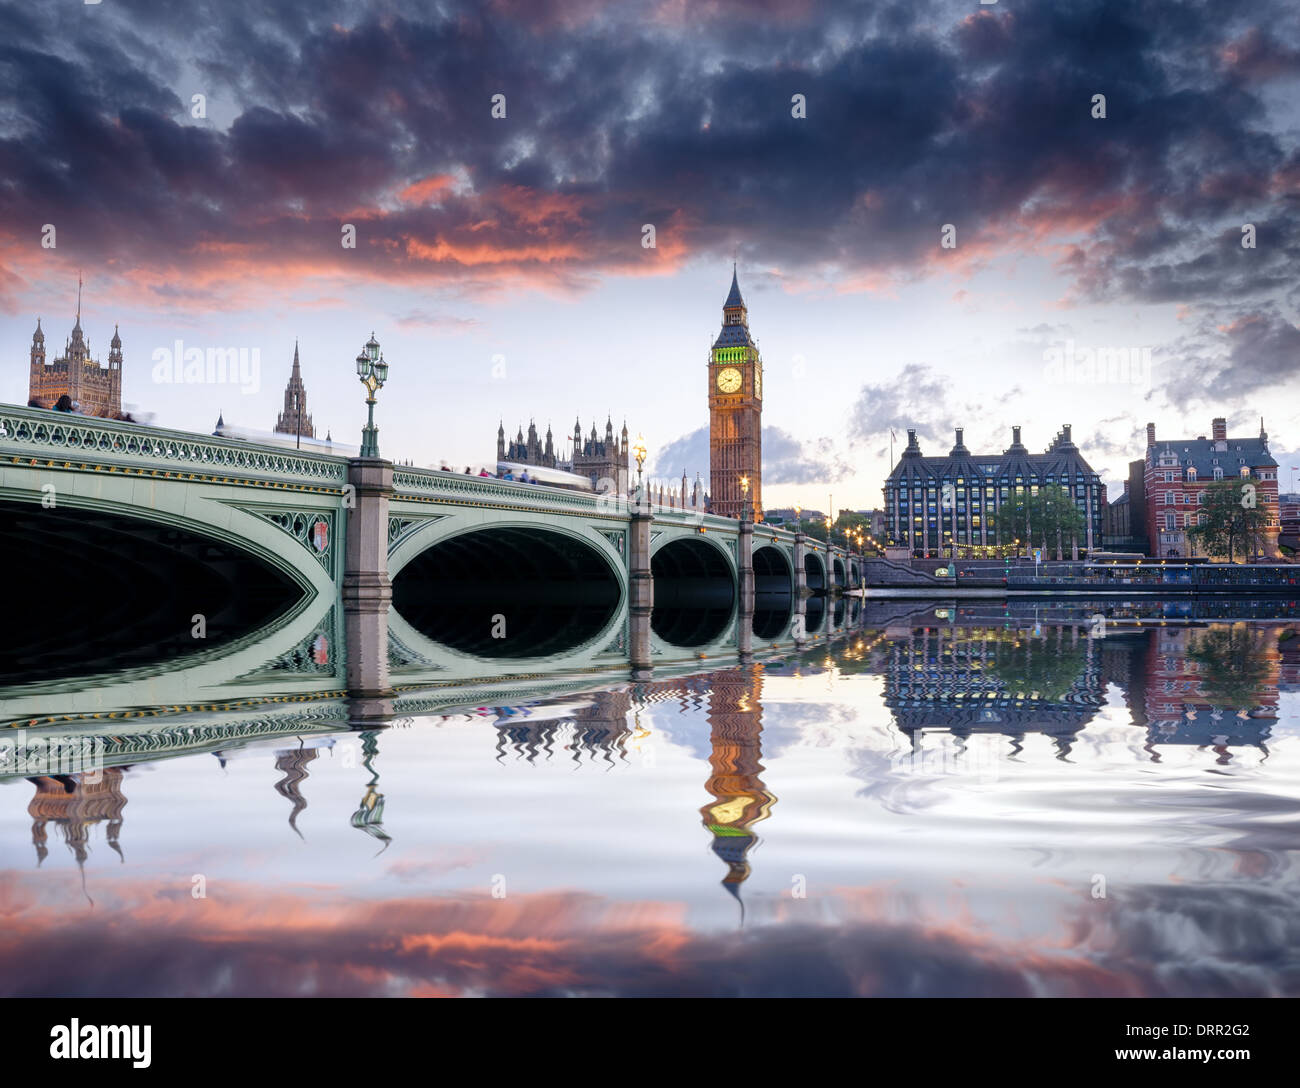 Crépuscule au pont de Westminster et Big Ben à Londres Photo Stock